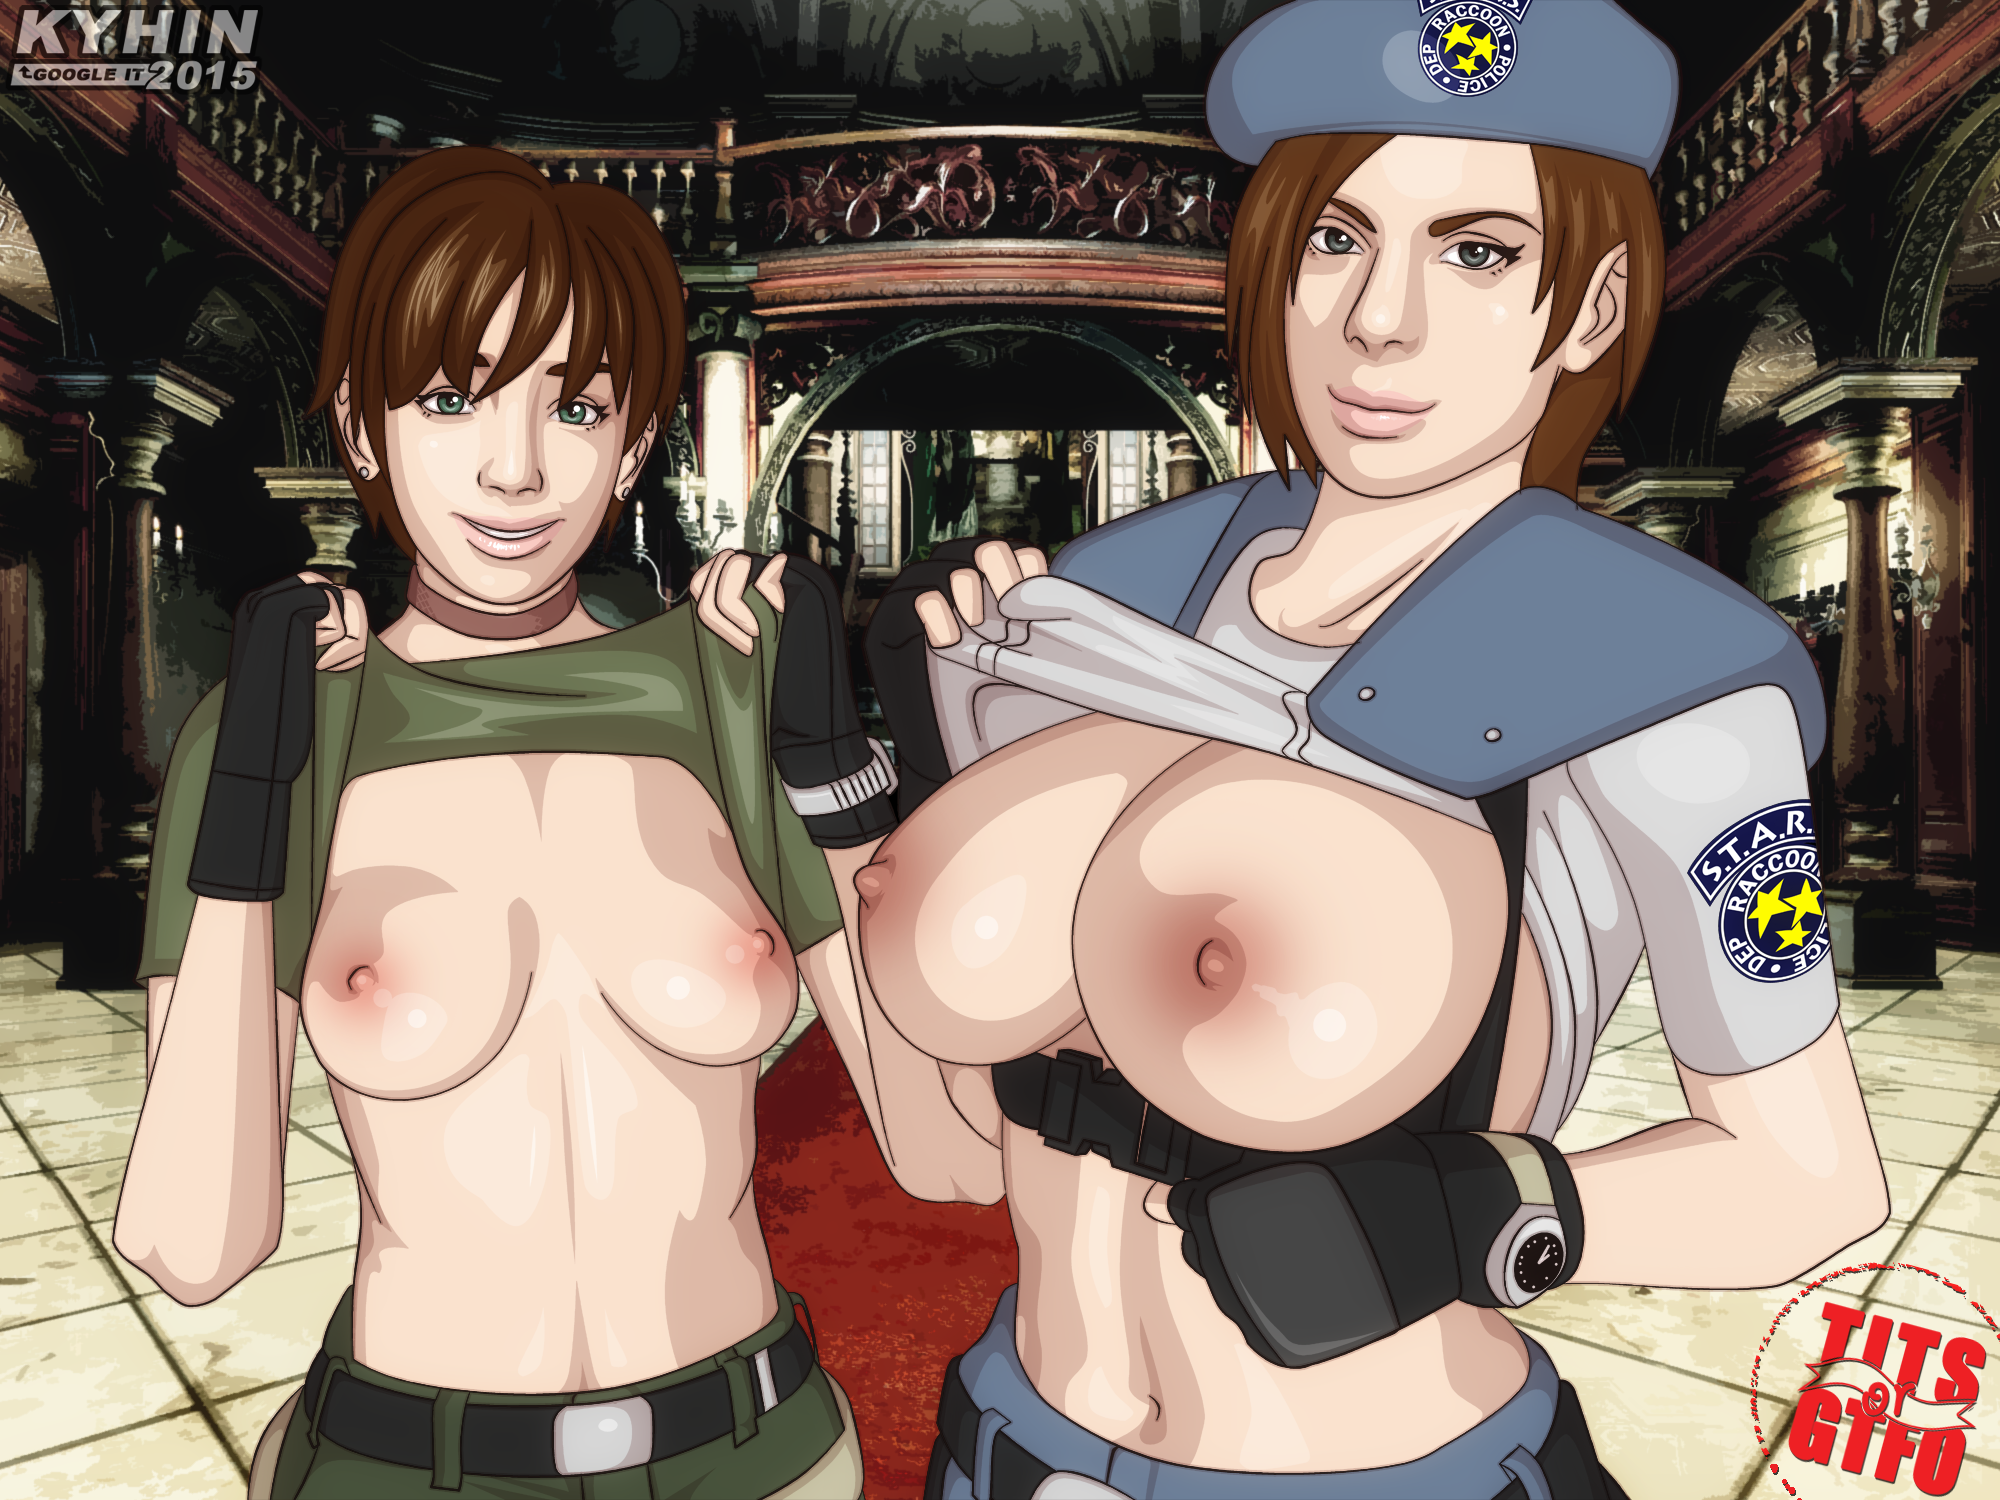 Nude resident evil fan art anime pictures